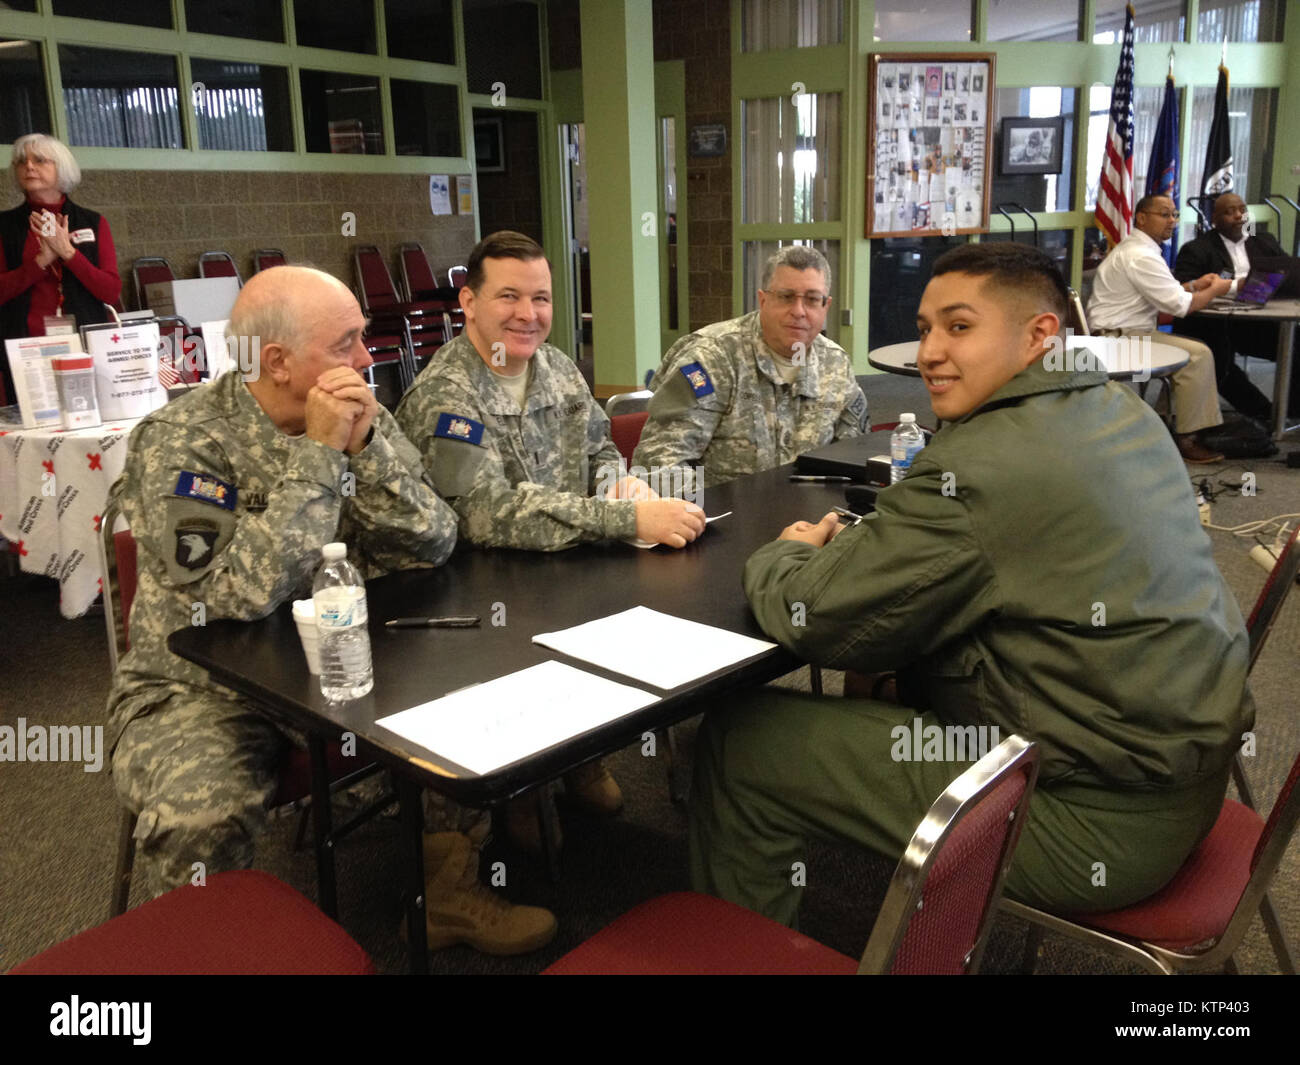 STEWART AIR NATIONAL GUARD BASE--Members of the New York Guard's 56th Brigade assisting Marine Corps Reserve - Stock Image